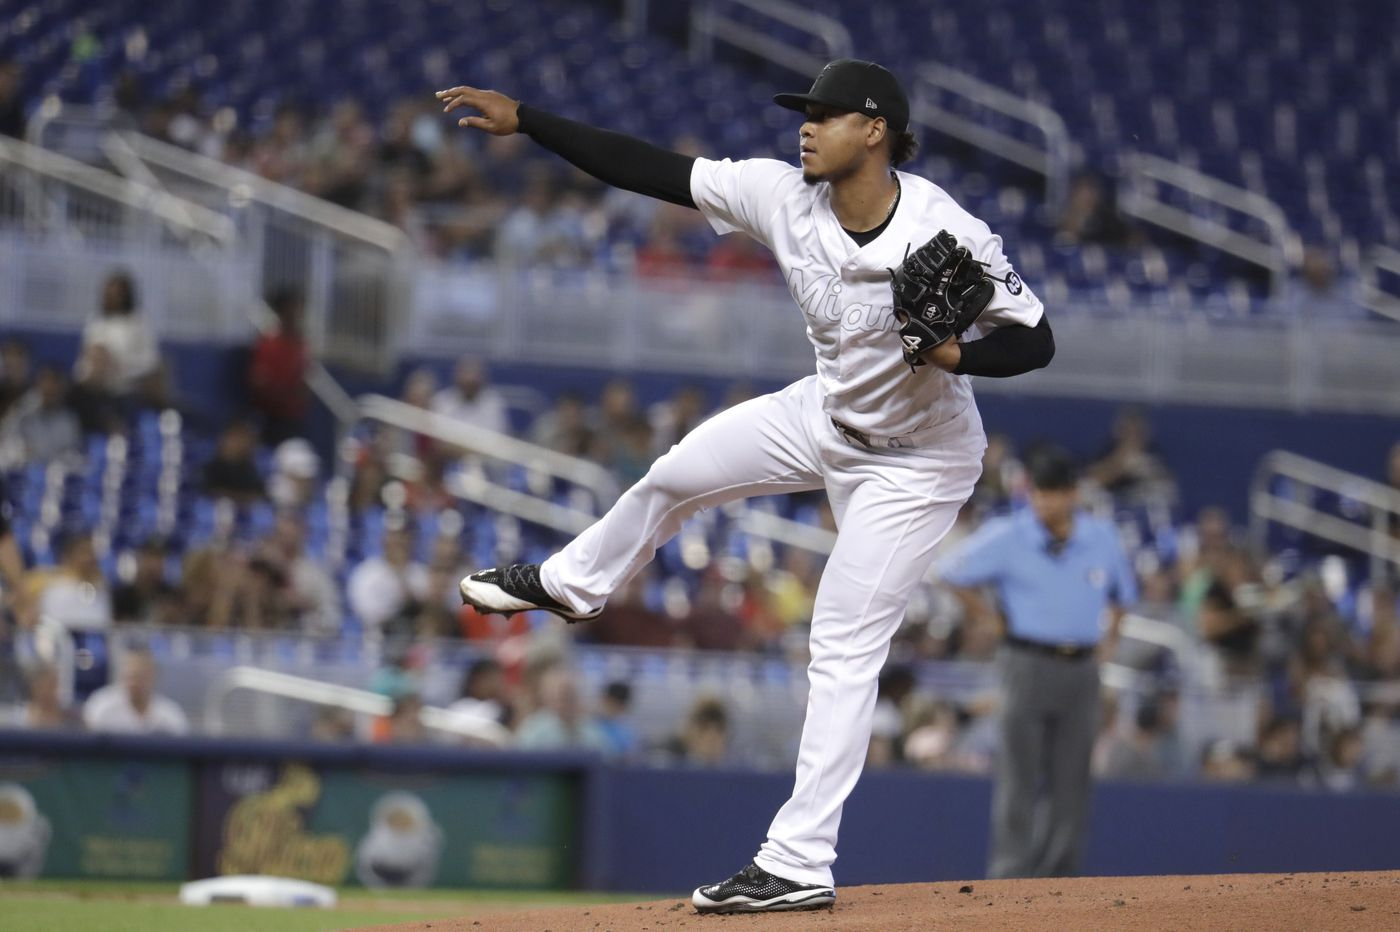 Phillies fall to Marlins, wasting solid Aaron Nola start to lose series